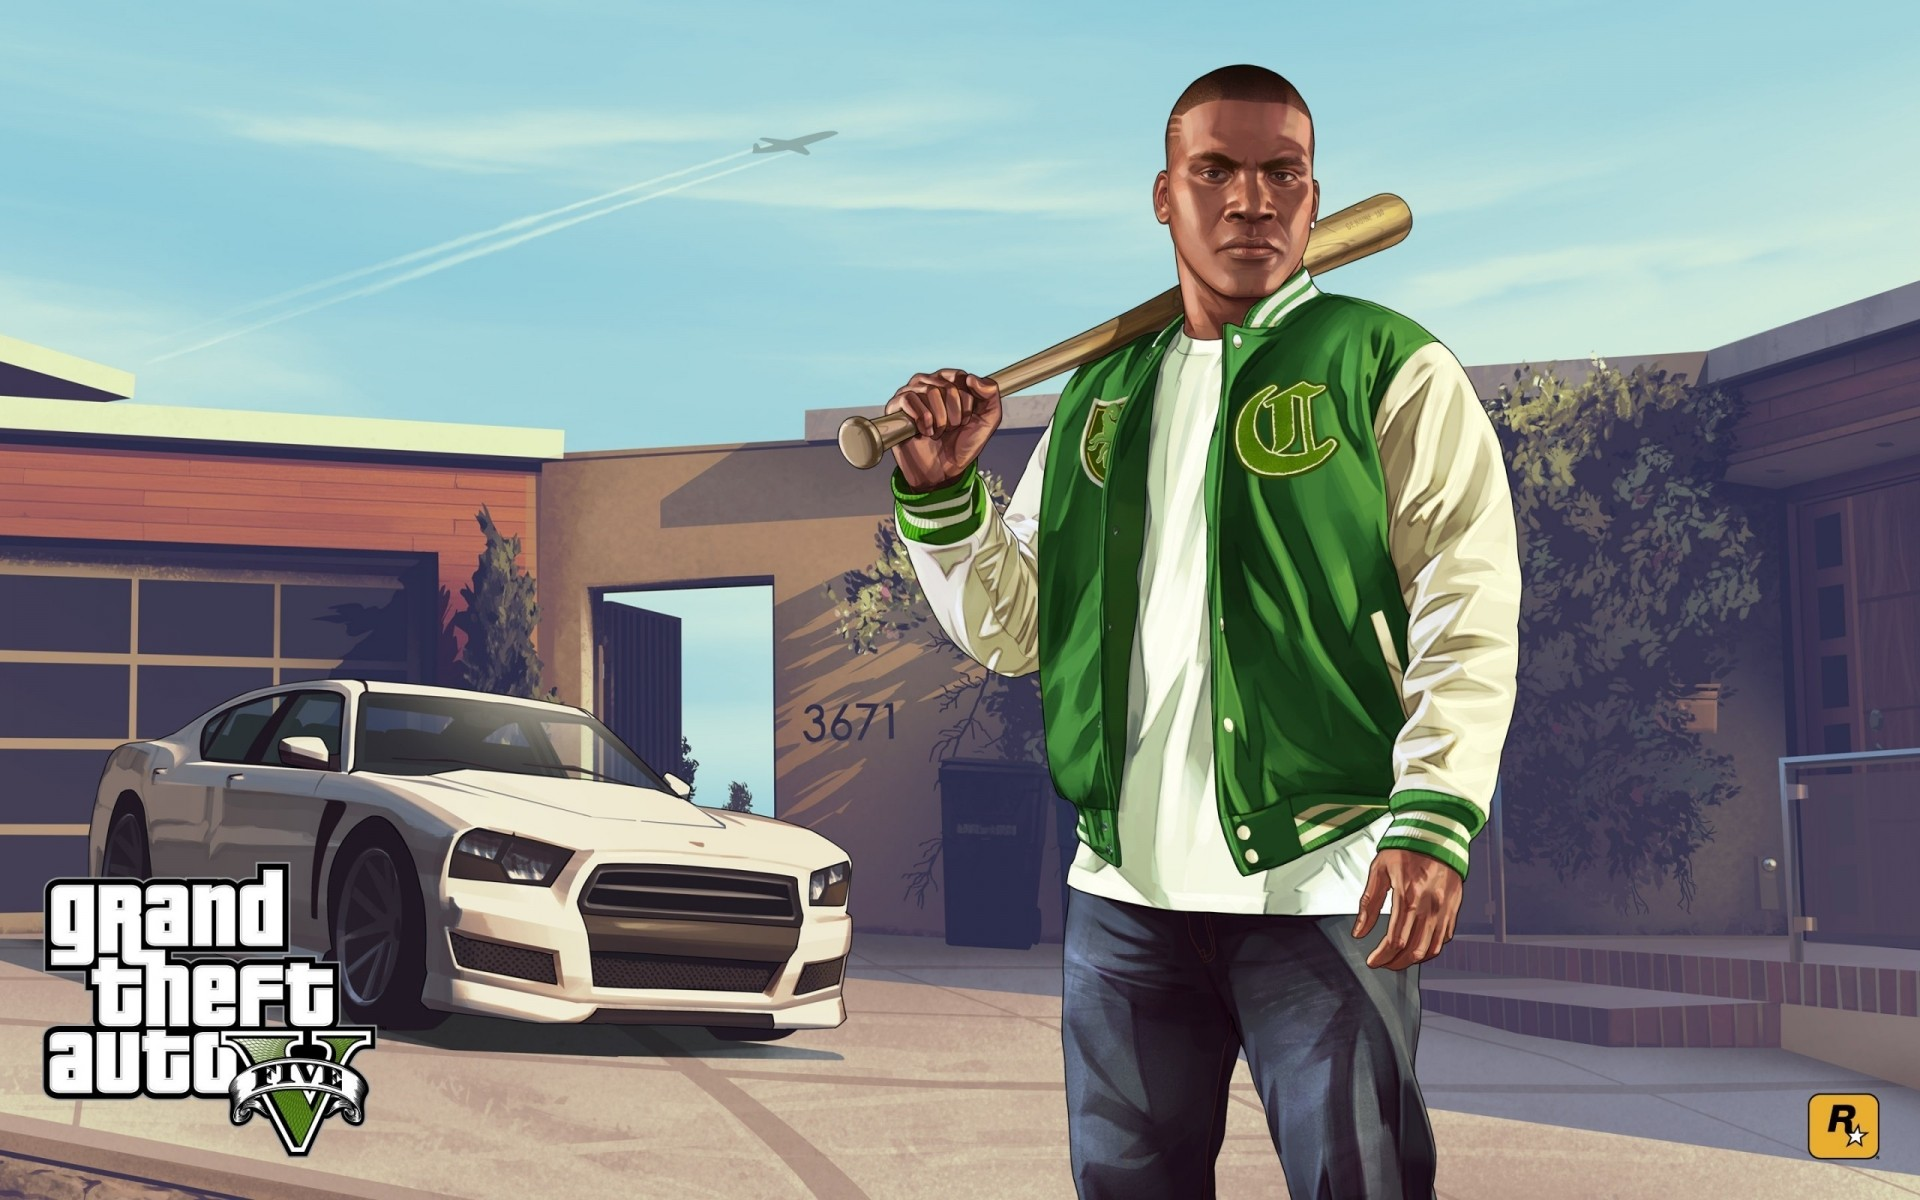 Grand Theft Auto V - Android wallpapers